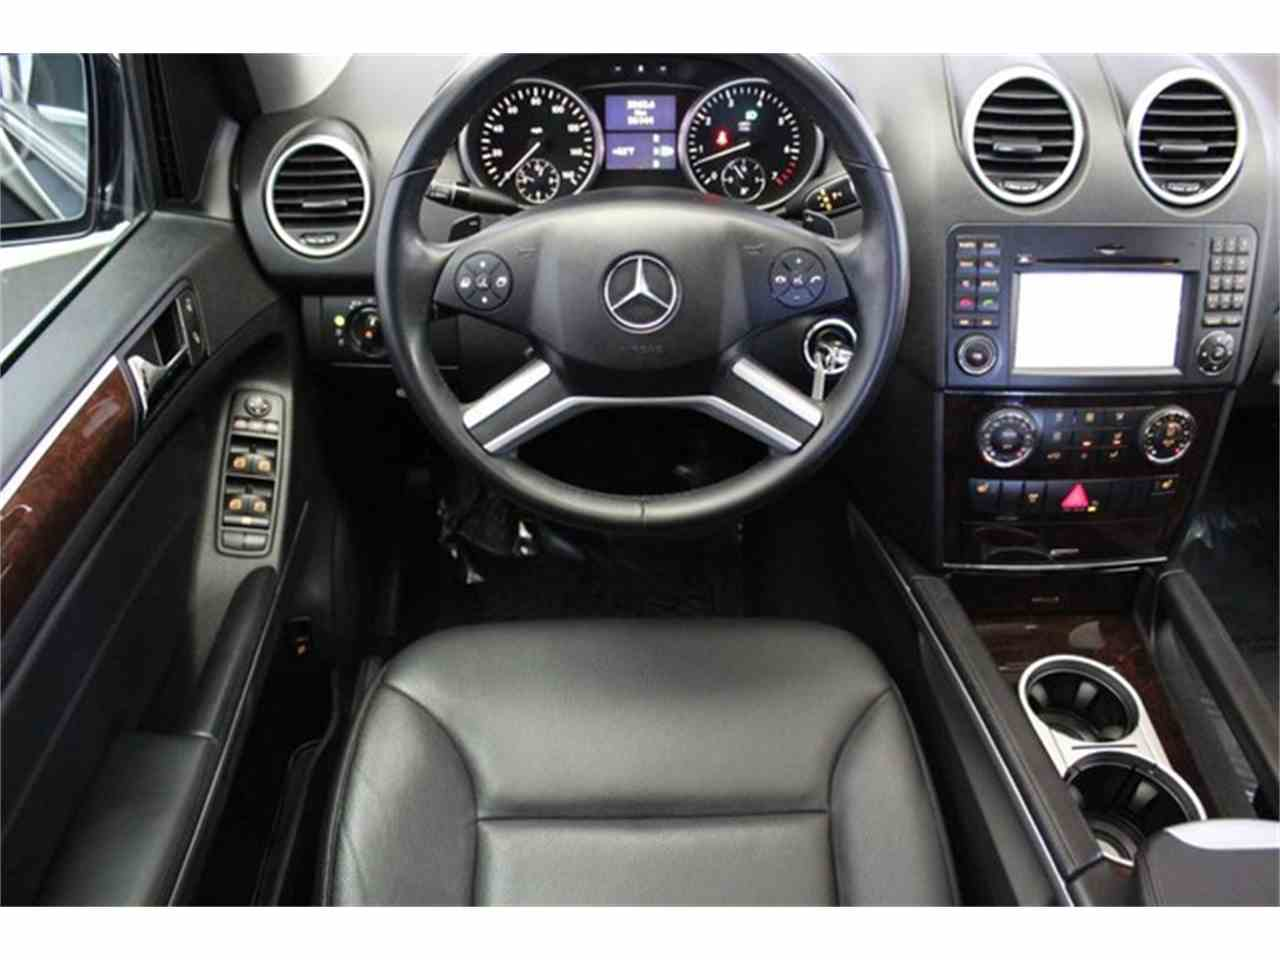 Large Picture of 2010 Mercedes-Benz M-Class located in Anaheim California - $19,800.00 - JC2Q